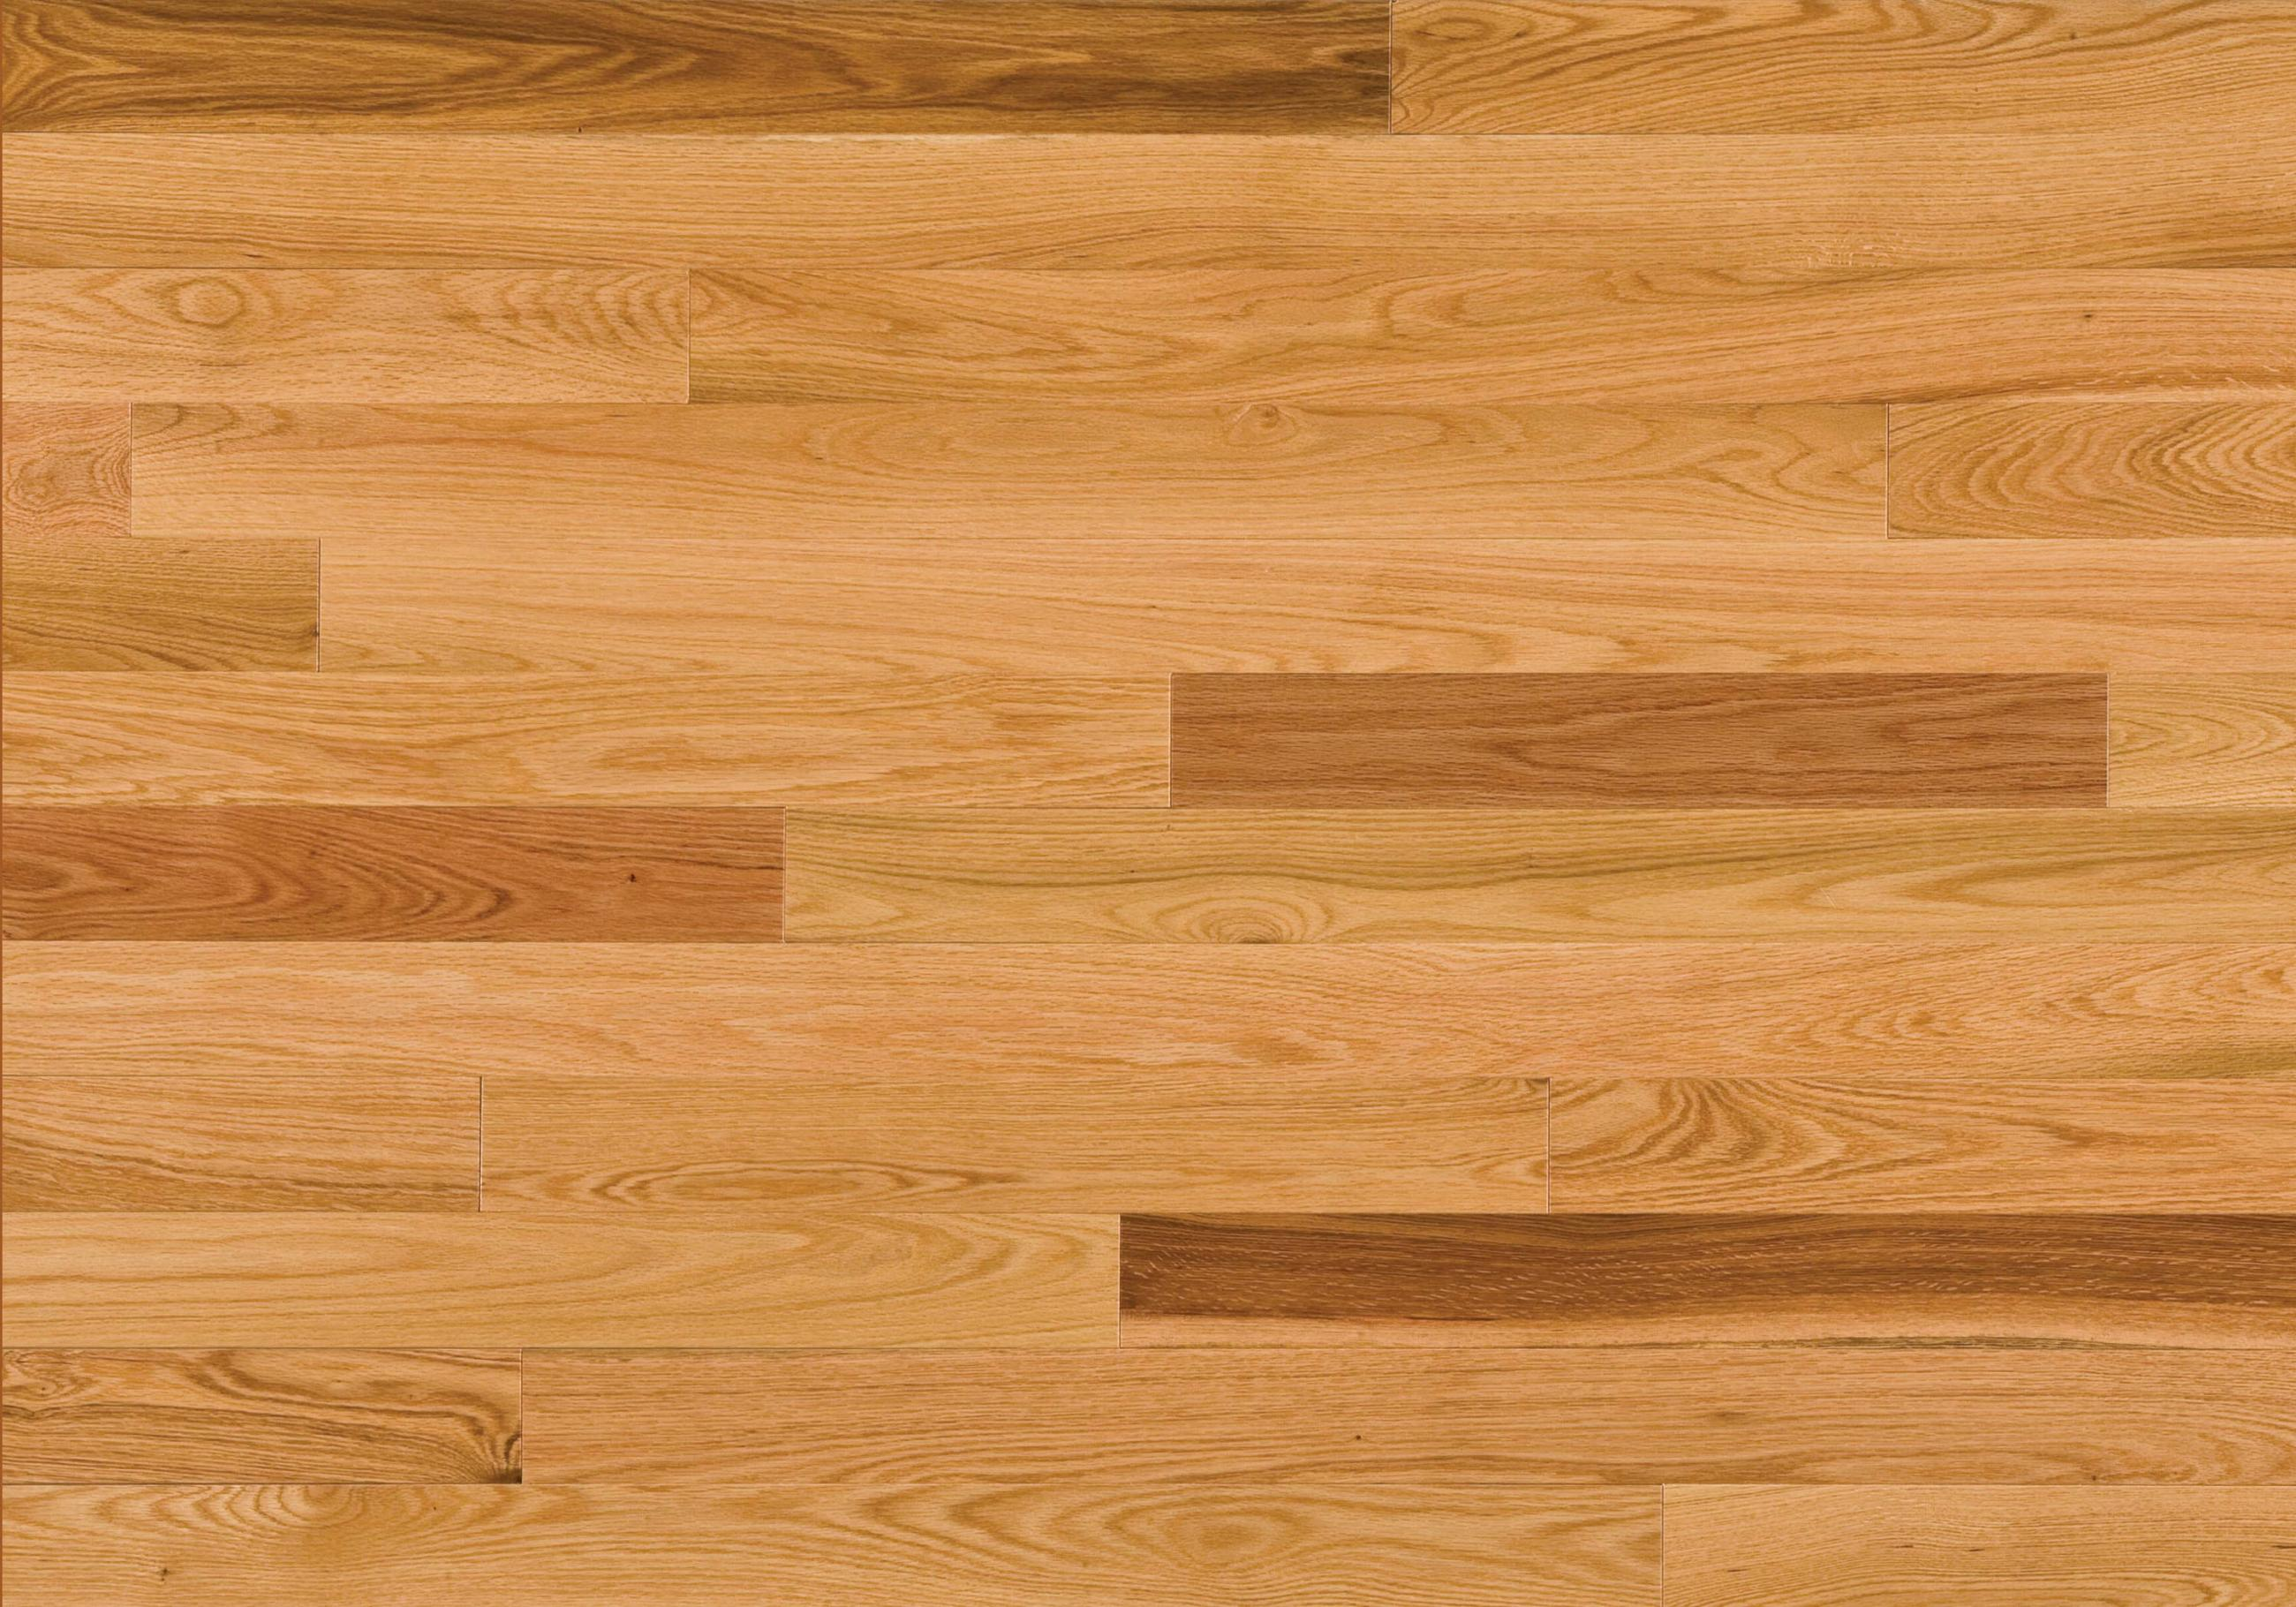 Engineered hardwood flooring specialty store in anaheim ca for Oak wood flooring